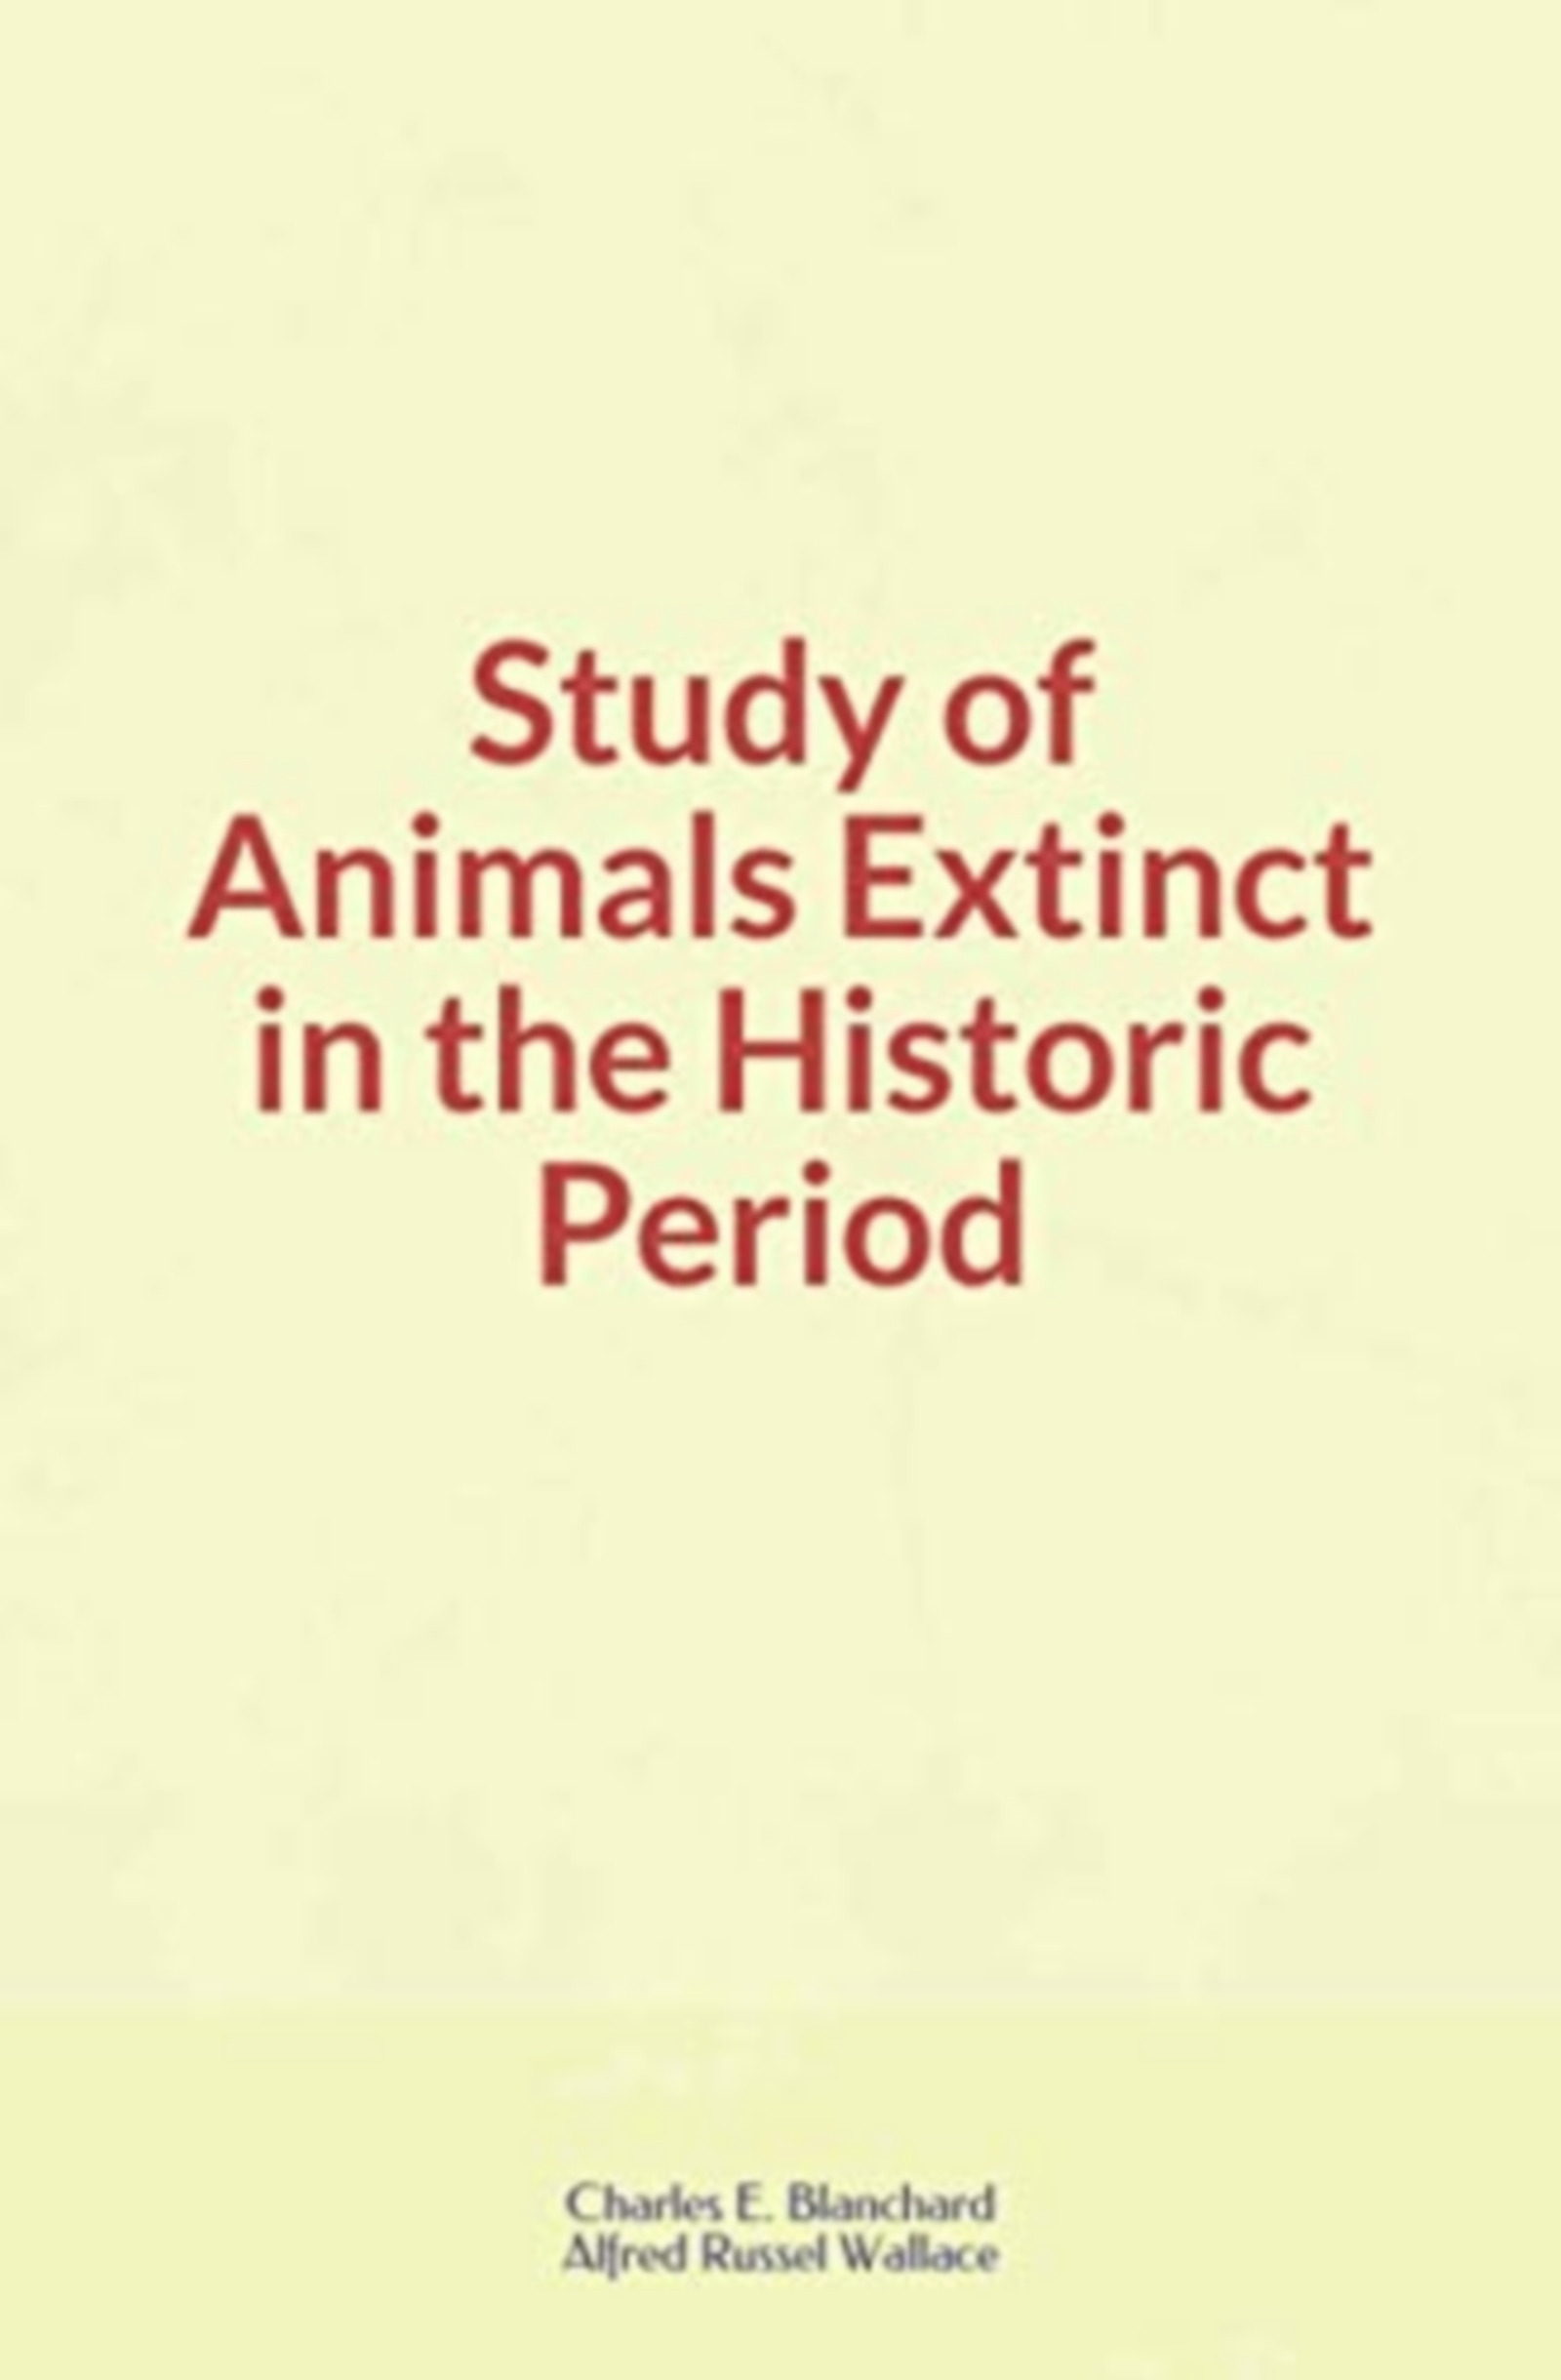 Study of Animals Extinct in the Historic Period